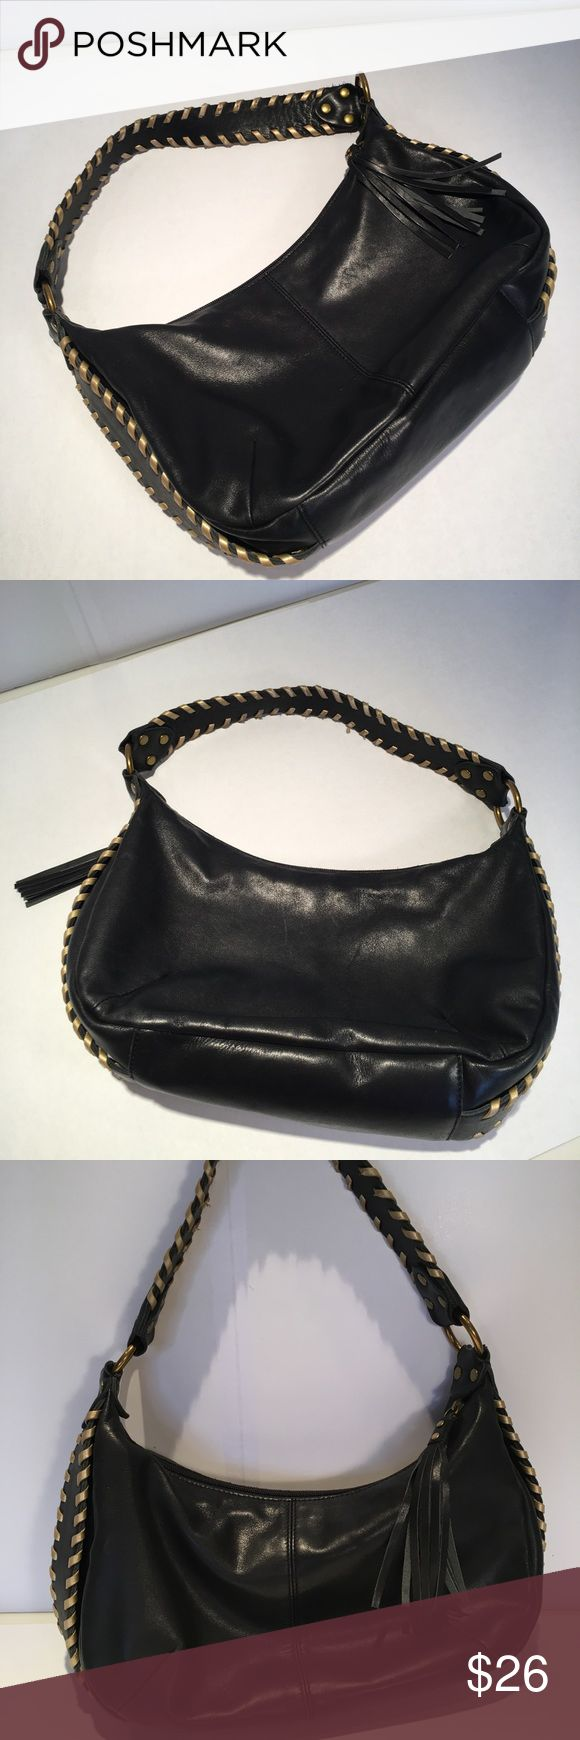 Black Leather Fossil Bag Black Leather Fossil Bag with gold braided trim on shoulder strap and sides of Bag.  There is some wear on the gold leather trim on inside of shoulder strap, but otherwise do not notice.  Bag has one tassle, one zippered pocket inside and 2 open pockets inside.  Good condition. Fossil Bags Hobos